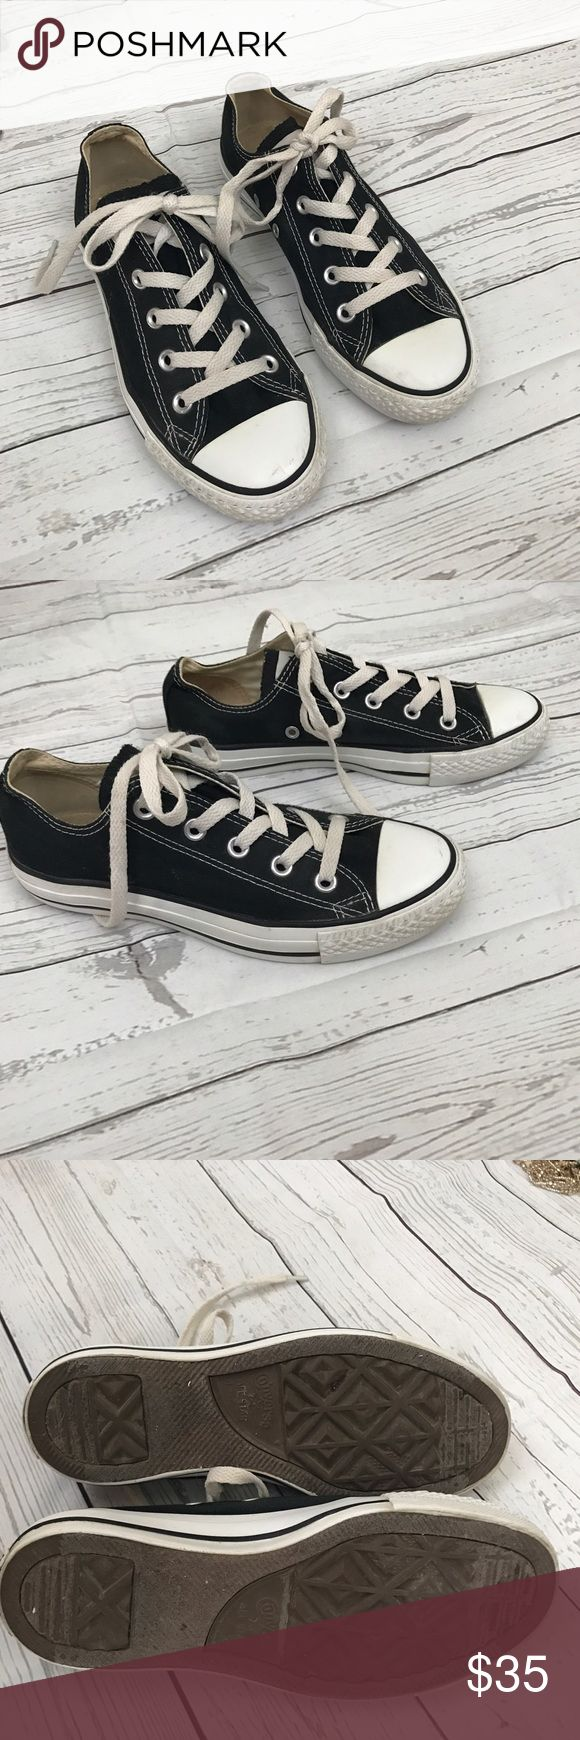 Converse Black Chuck Taylor All Star A classic! Excellent used condition. Minimal but normal wear. See pictures. Small mark on toe...otherwise in great condition!  Retails for $55.. size Men's 4 / Women's 6. No trades, offers welcome Converse Shoes Sneakers